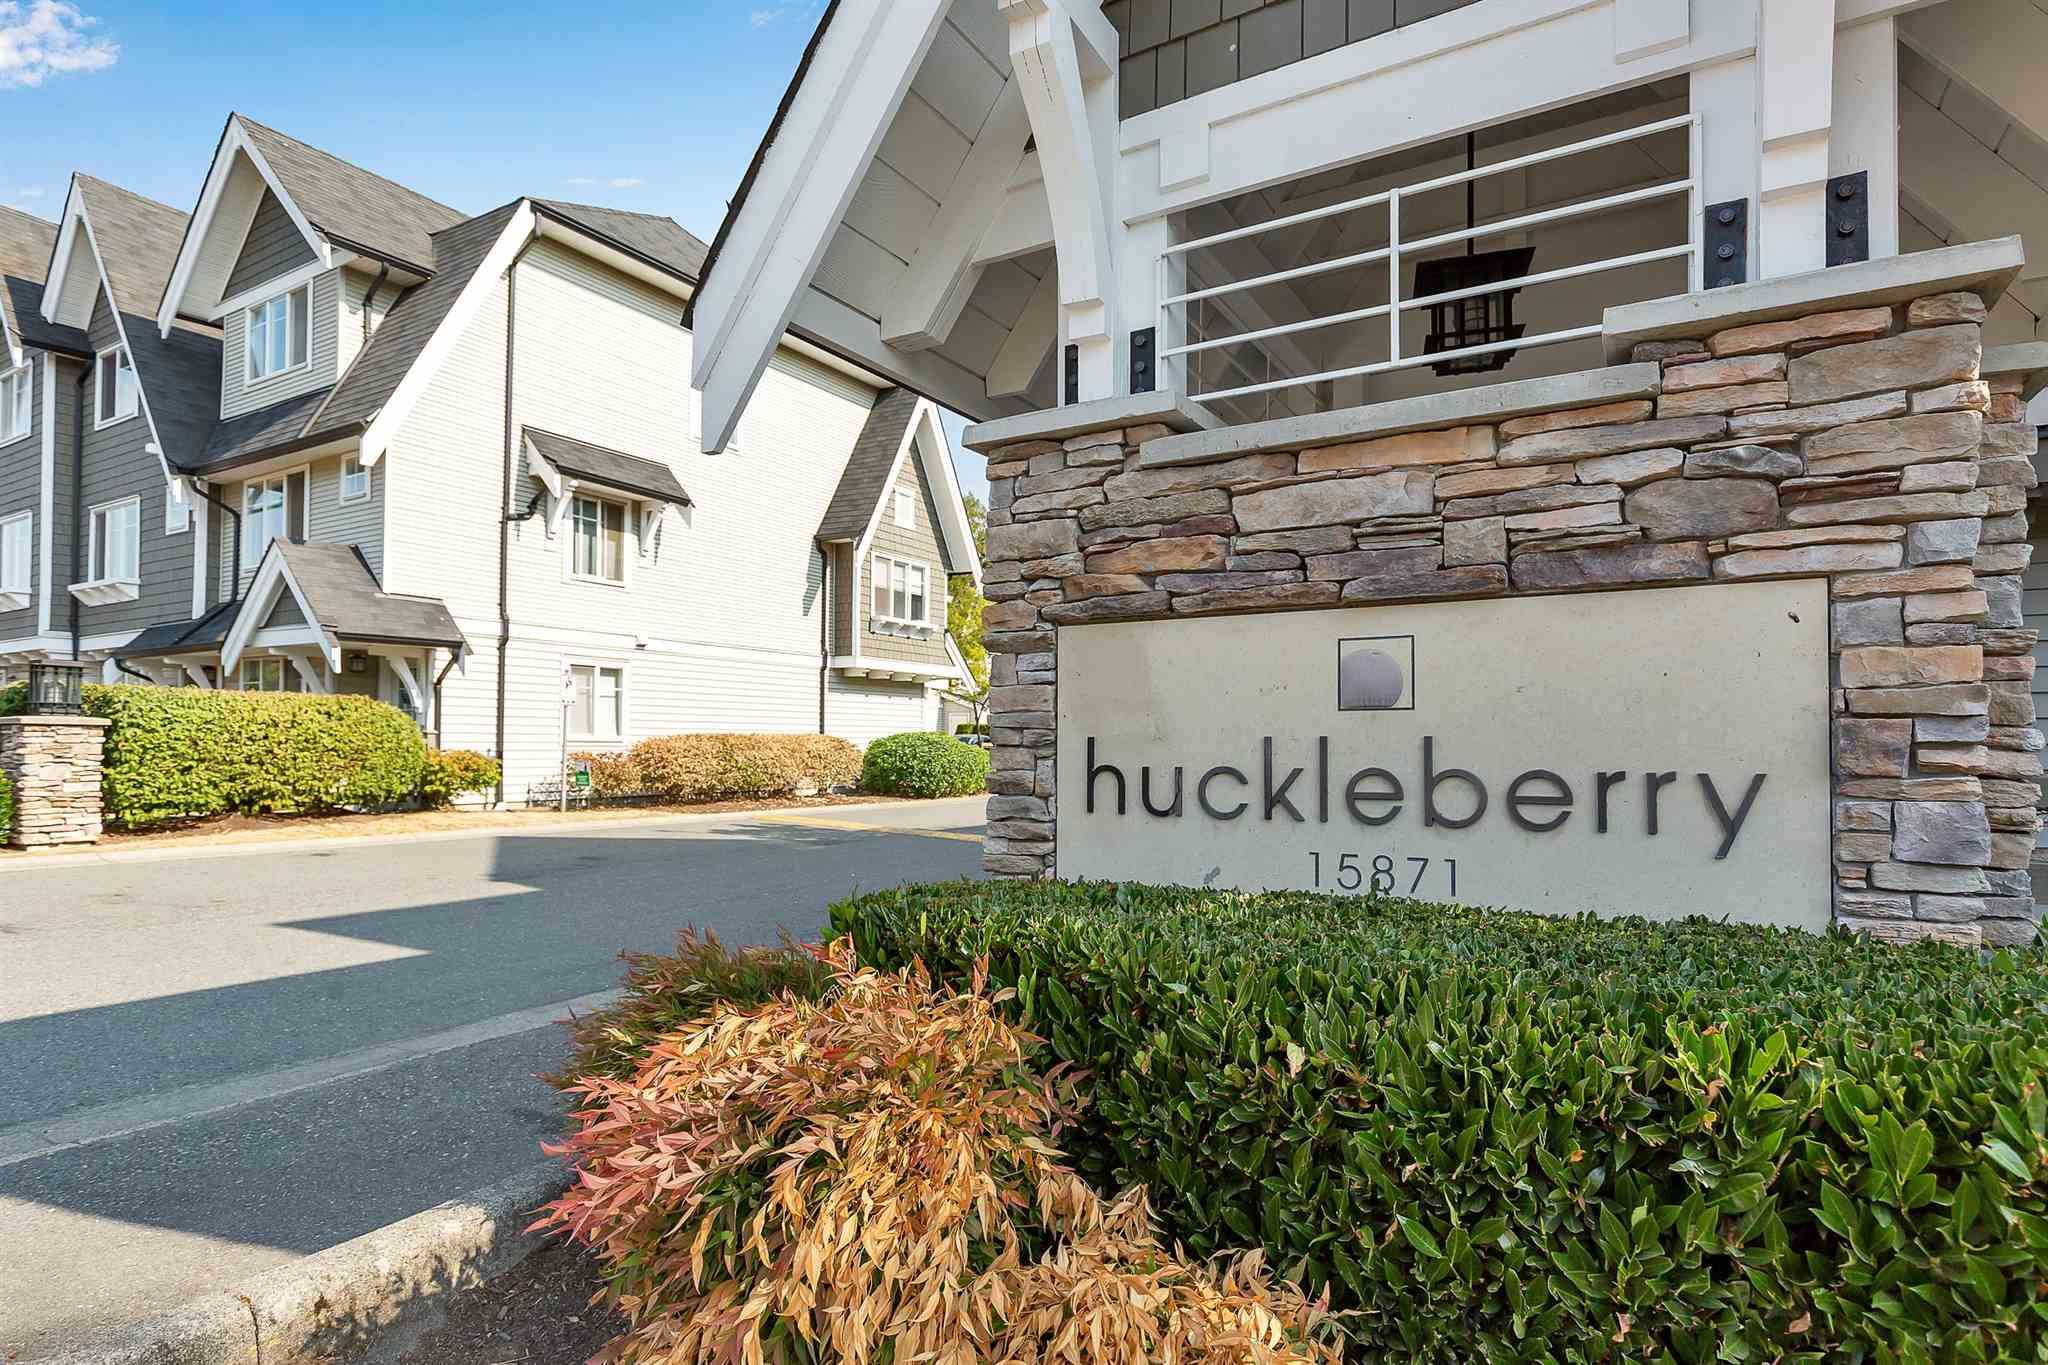 """Photo 33: Photos: 9 15871 85 Avenue in Surrey: Fleetwood Tynehead Townhouse for sale in """"Huckleberry"""" : MLS®# R2606668"""